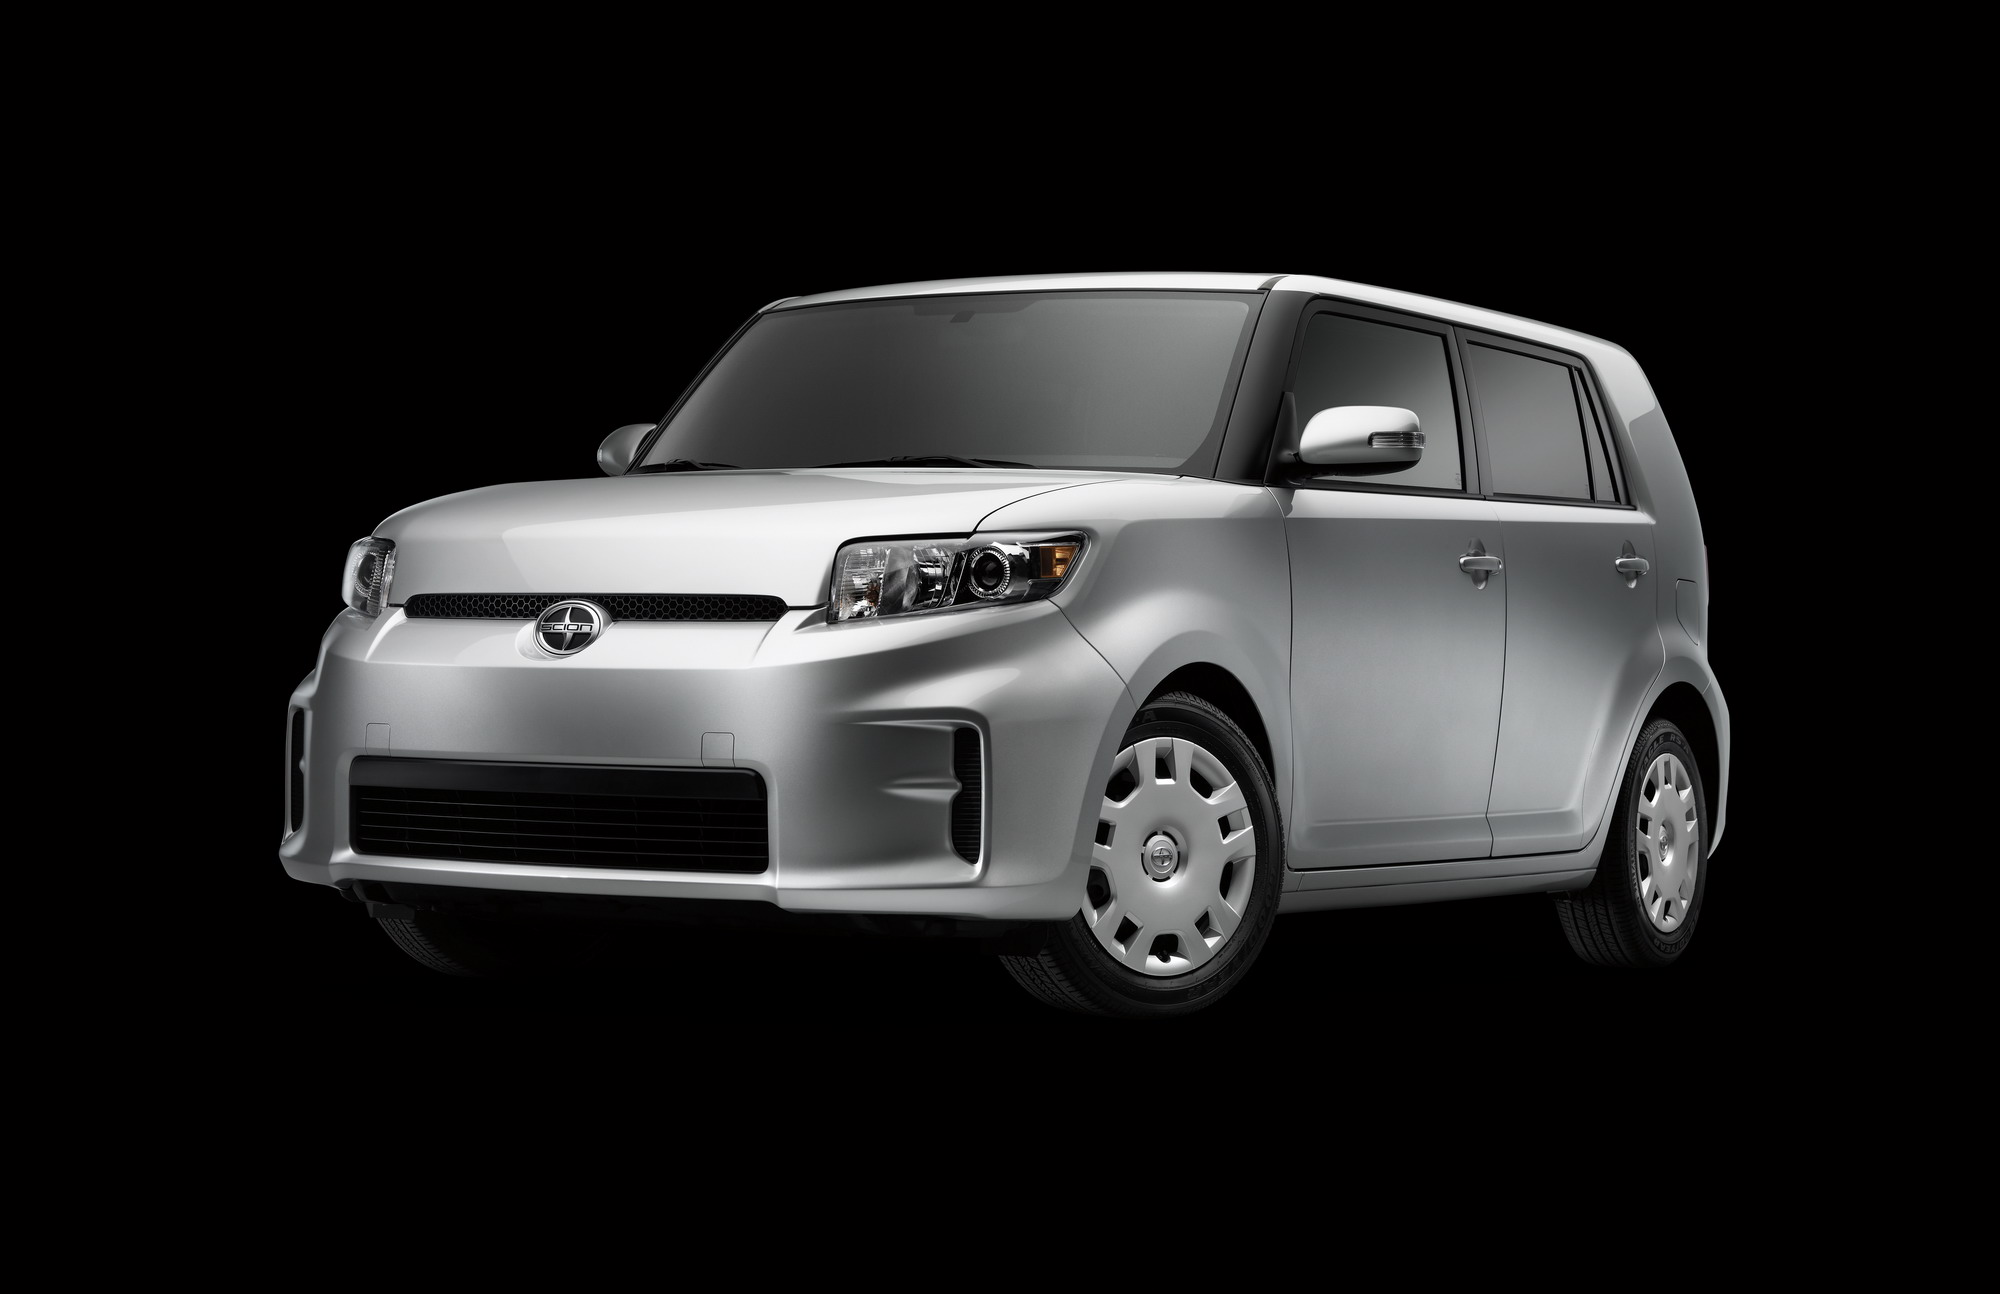 2011 scion xb review gallery top speed. Black Bedroom Furniture Sets. Home Design Ideas